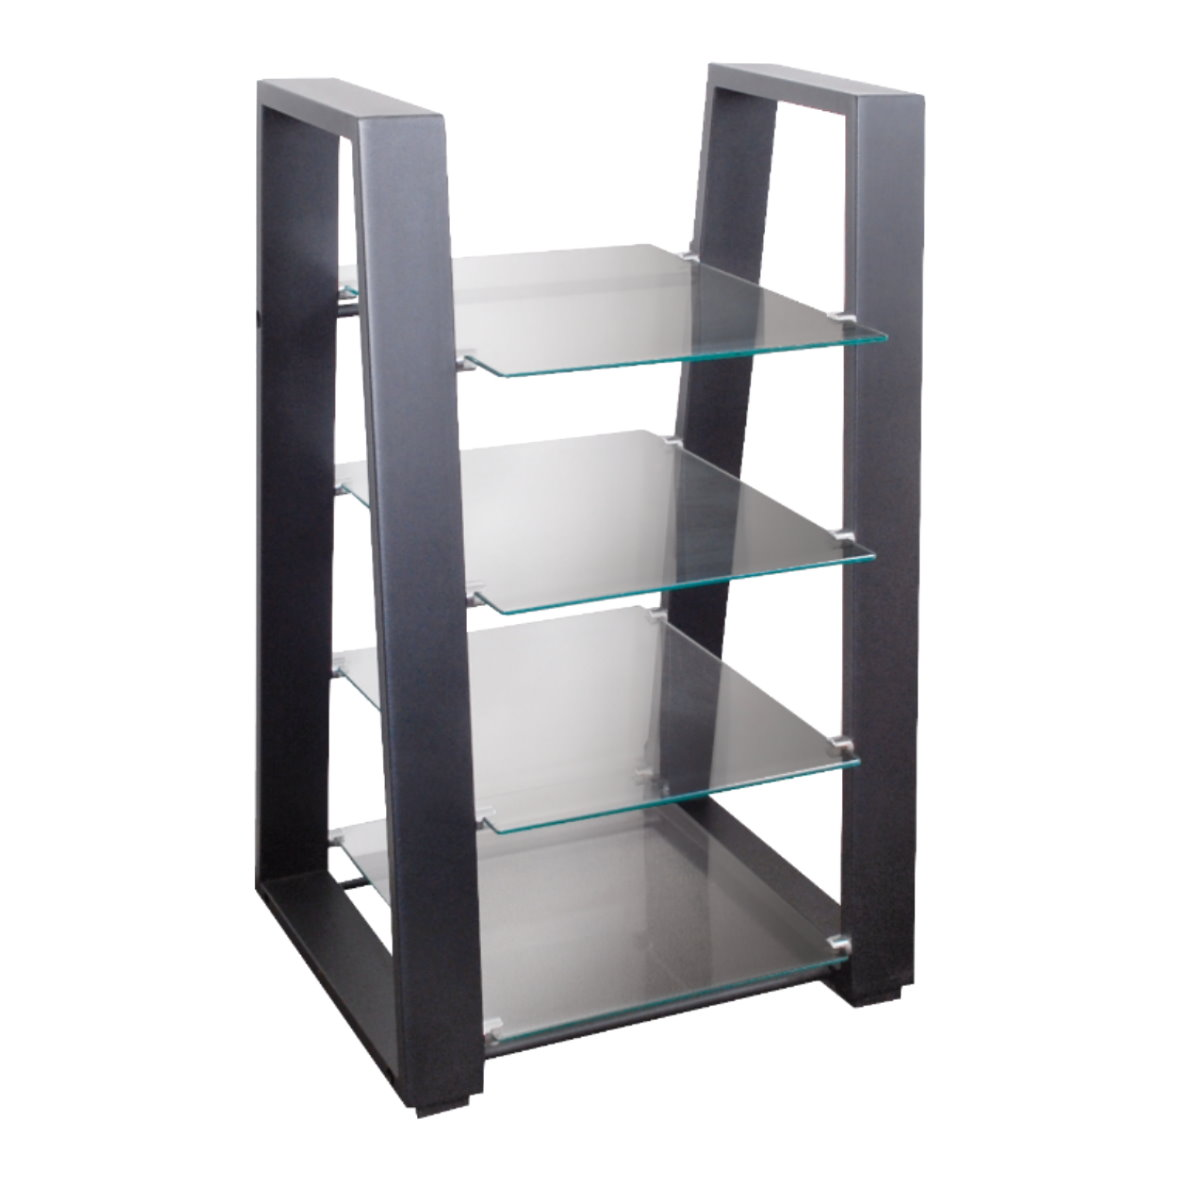 tv hifi rack shelf stand glass safety aluminium solid. Black Bedroom Furniture Sets. Home Design Ideas